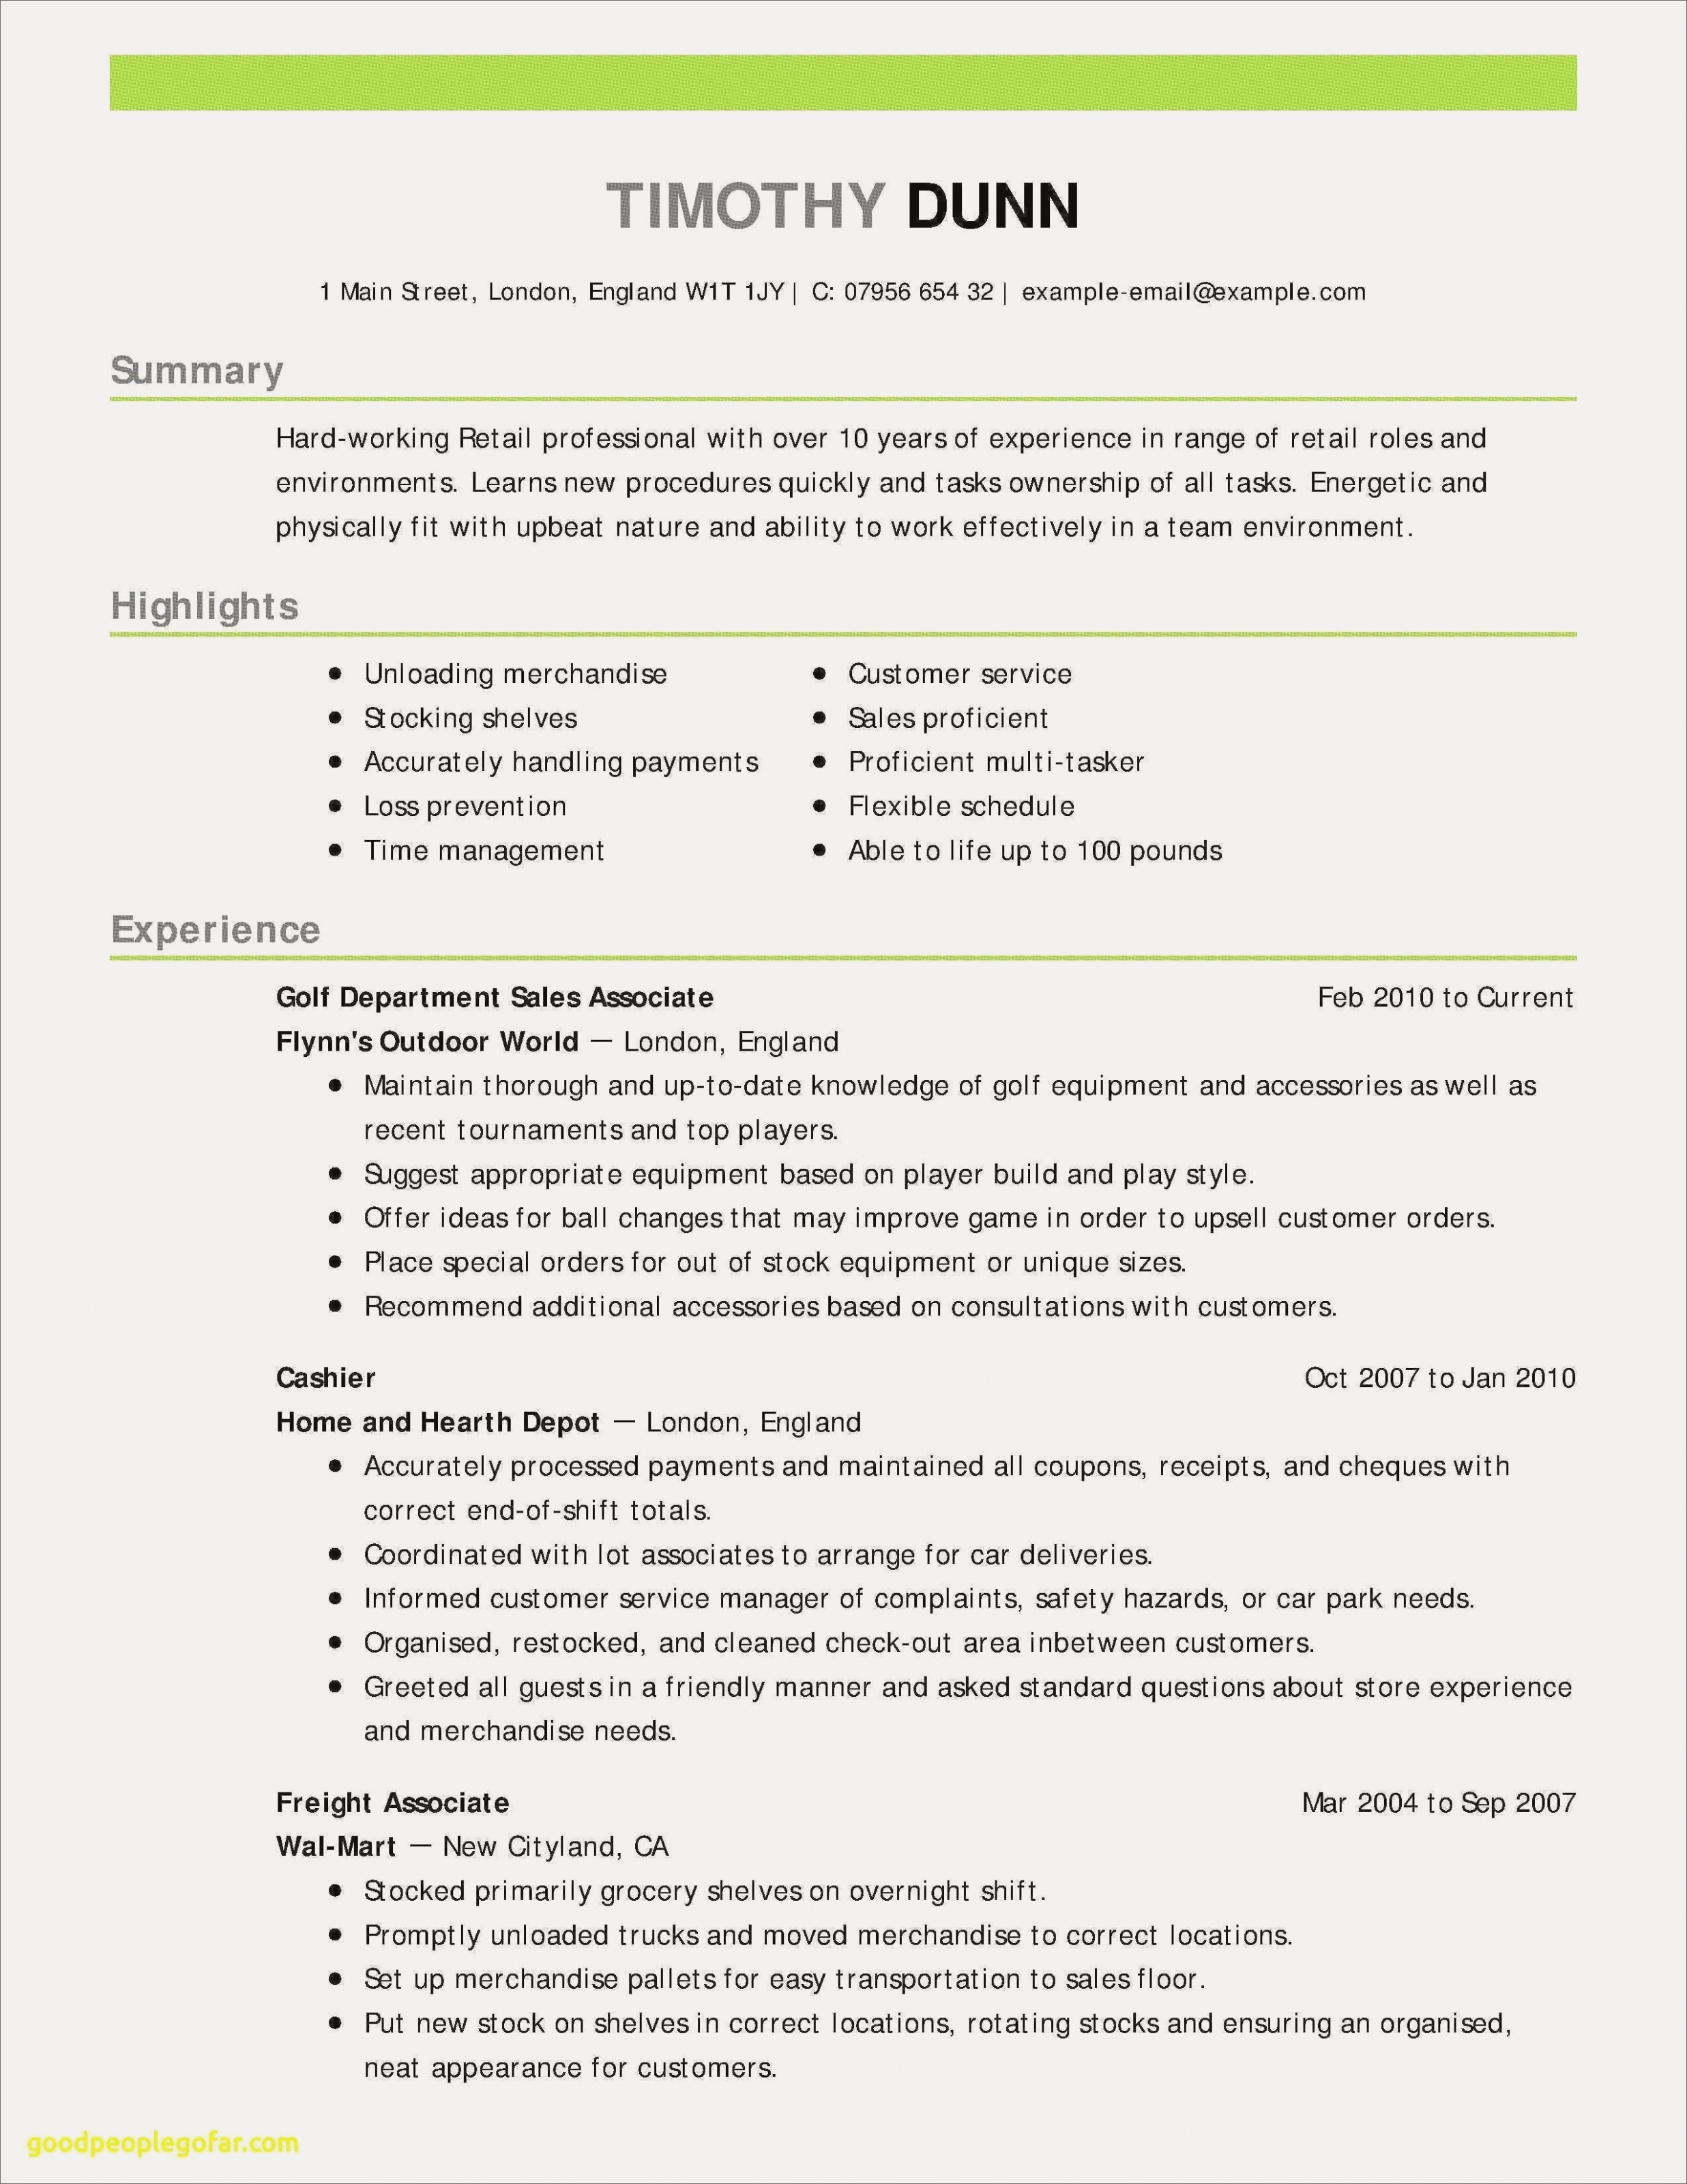 Phd Resume Template Doc - Professional Resume Template Doc Investor Letter Template Examples